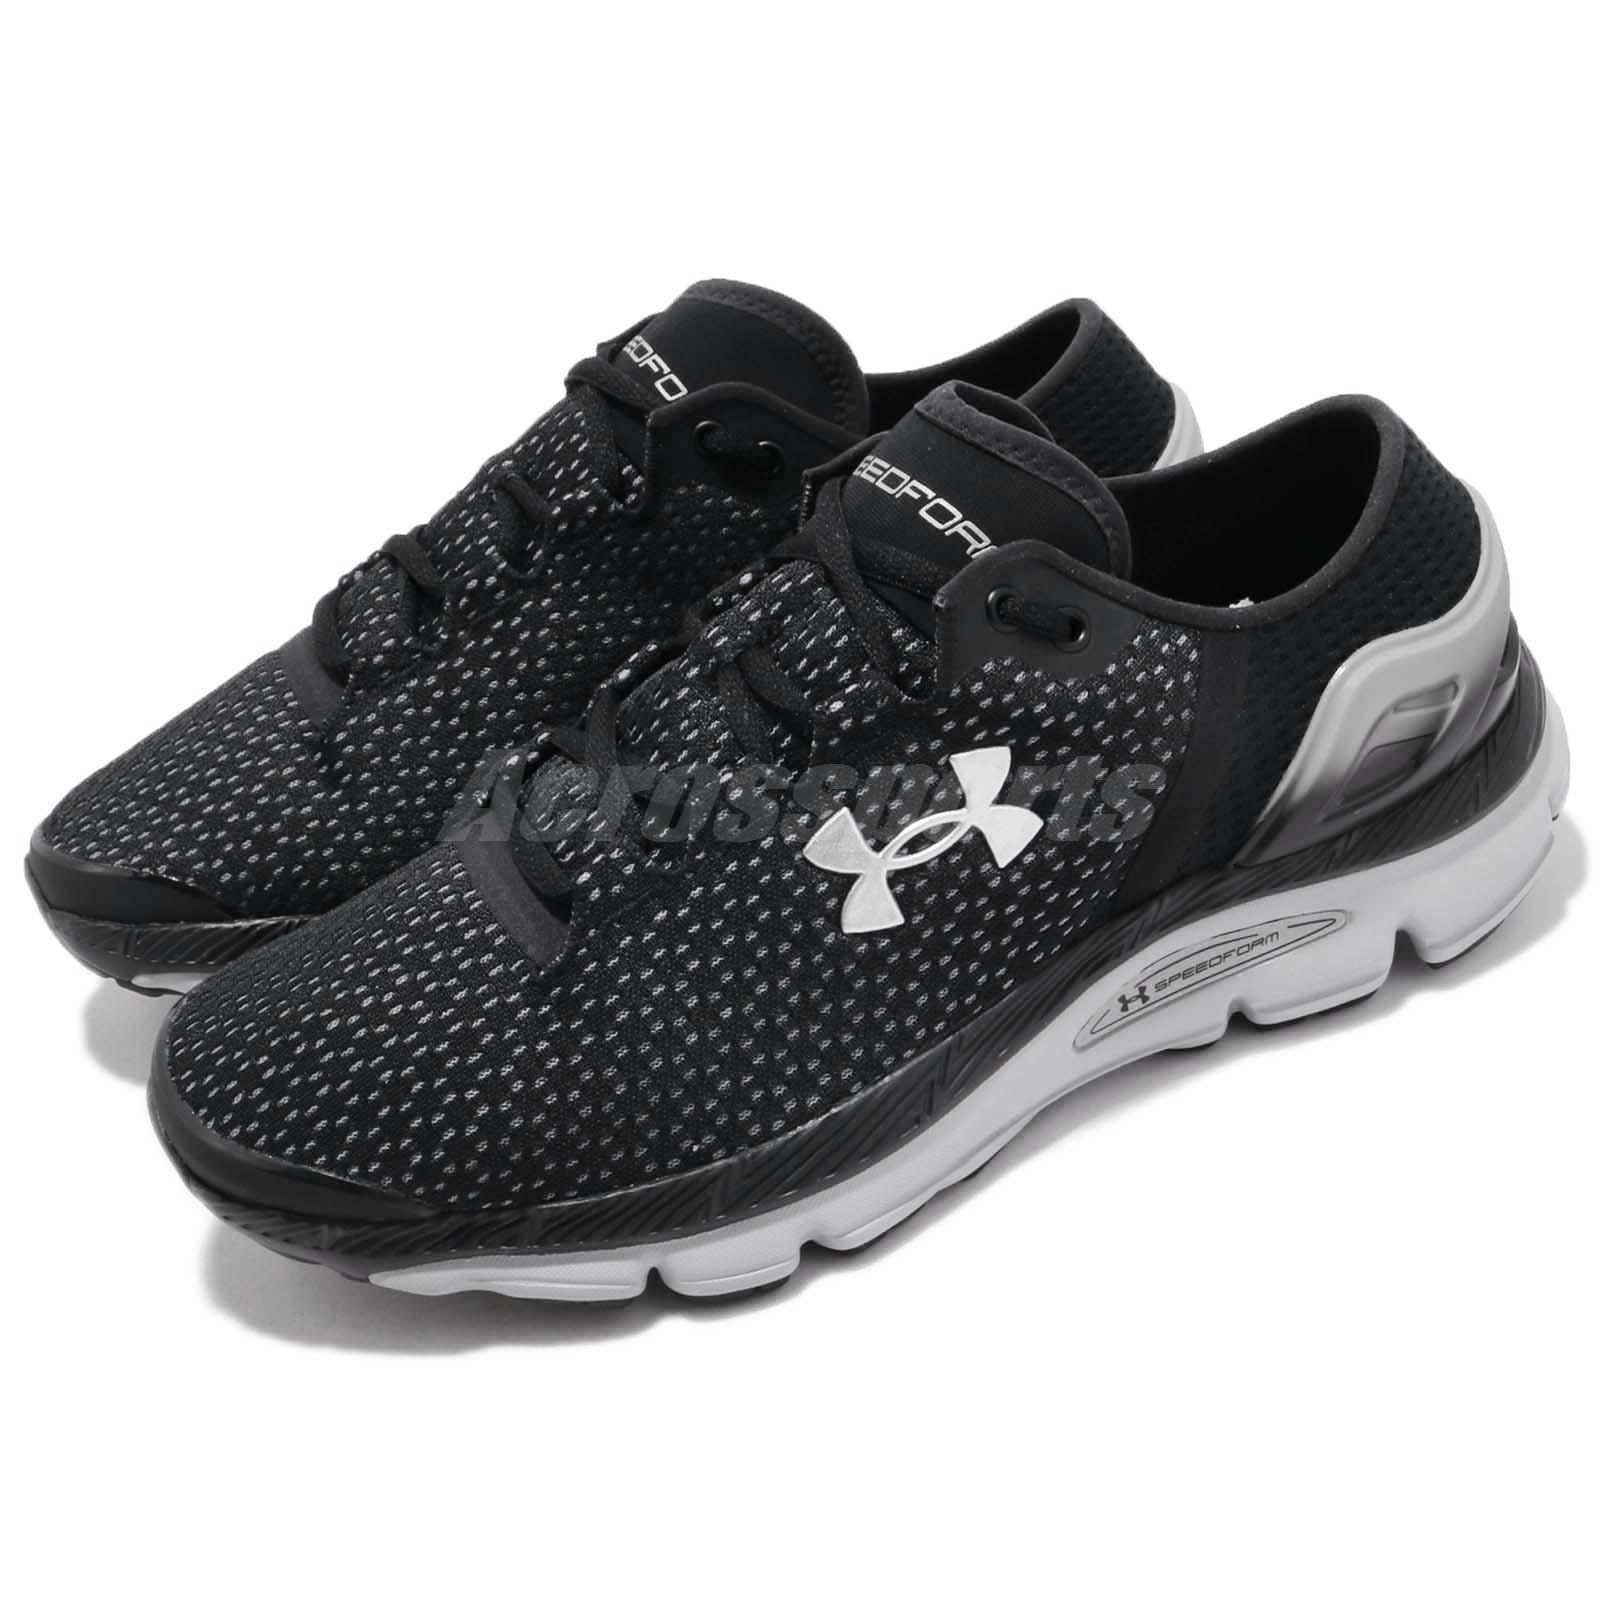 d66aea5d4 Details about Under Armour SpeedForm Intake 2 Black Grey Silver Men Running  Shoes 3000288-002